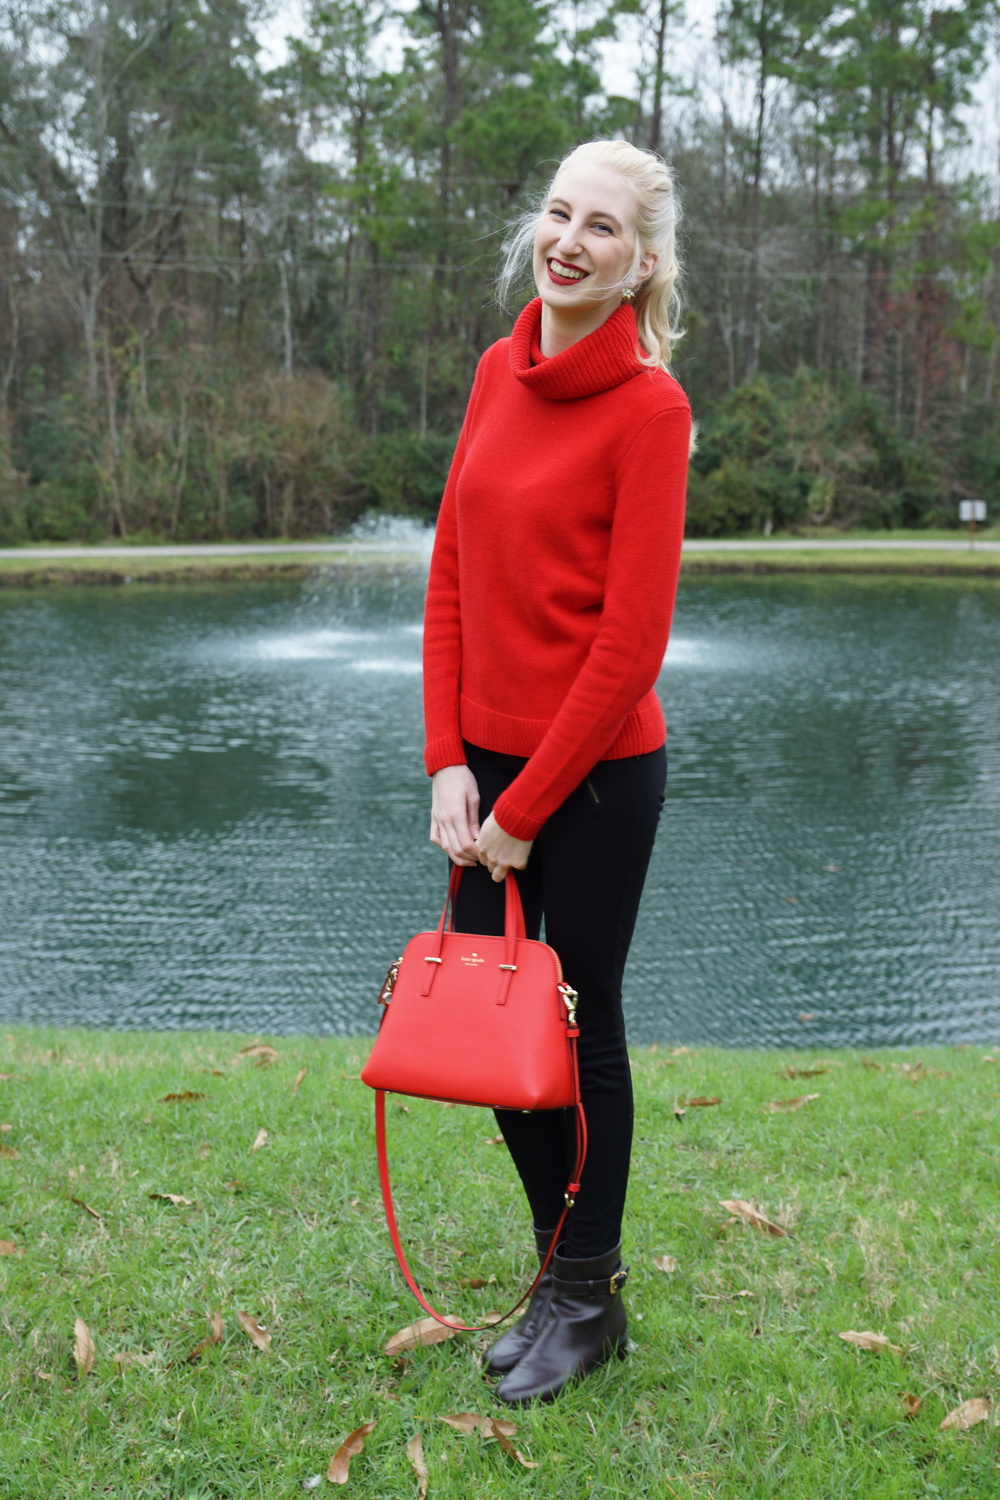 J.Crew Factory turtleneck sweater, Stella & Dot earrings, NARS matte lip pencil in Cruella, J.Crew pixie pants, TJ Maxx ankle boots, Kate Spade Cedar Street Maise